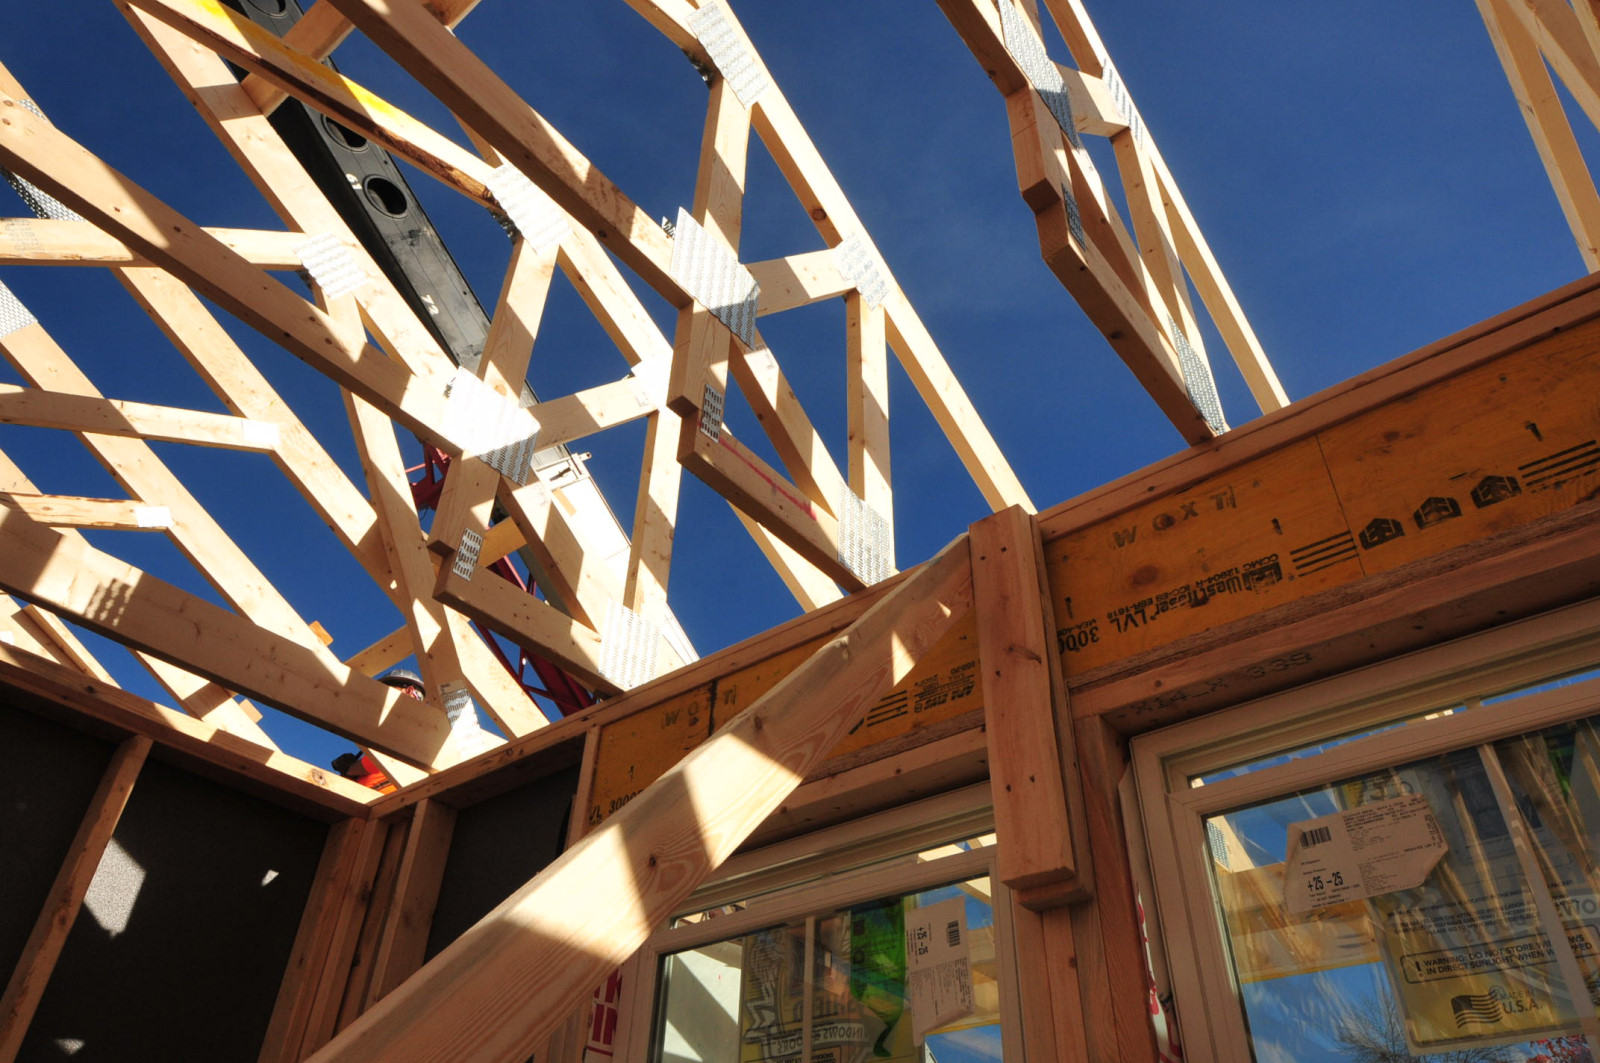 Component marketing toolbox structural building components view sample photo 1betcityfo Image collections